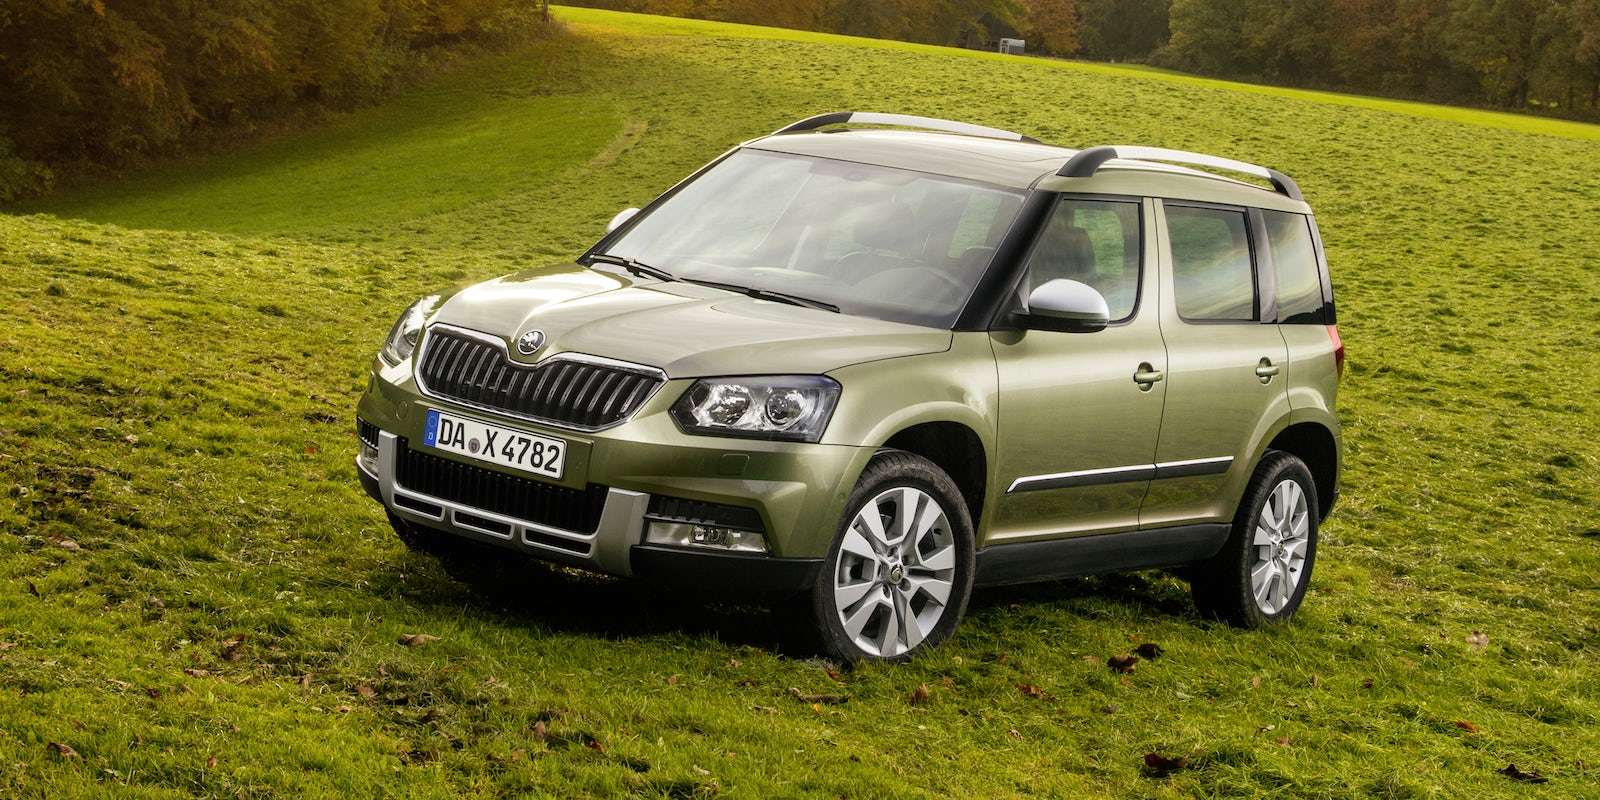 skoda yeti outdoor test technische daten preis carwow. Black Bedroom Furniture Sets. Home Design Ideas